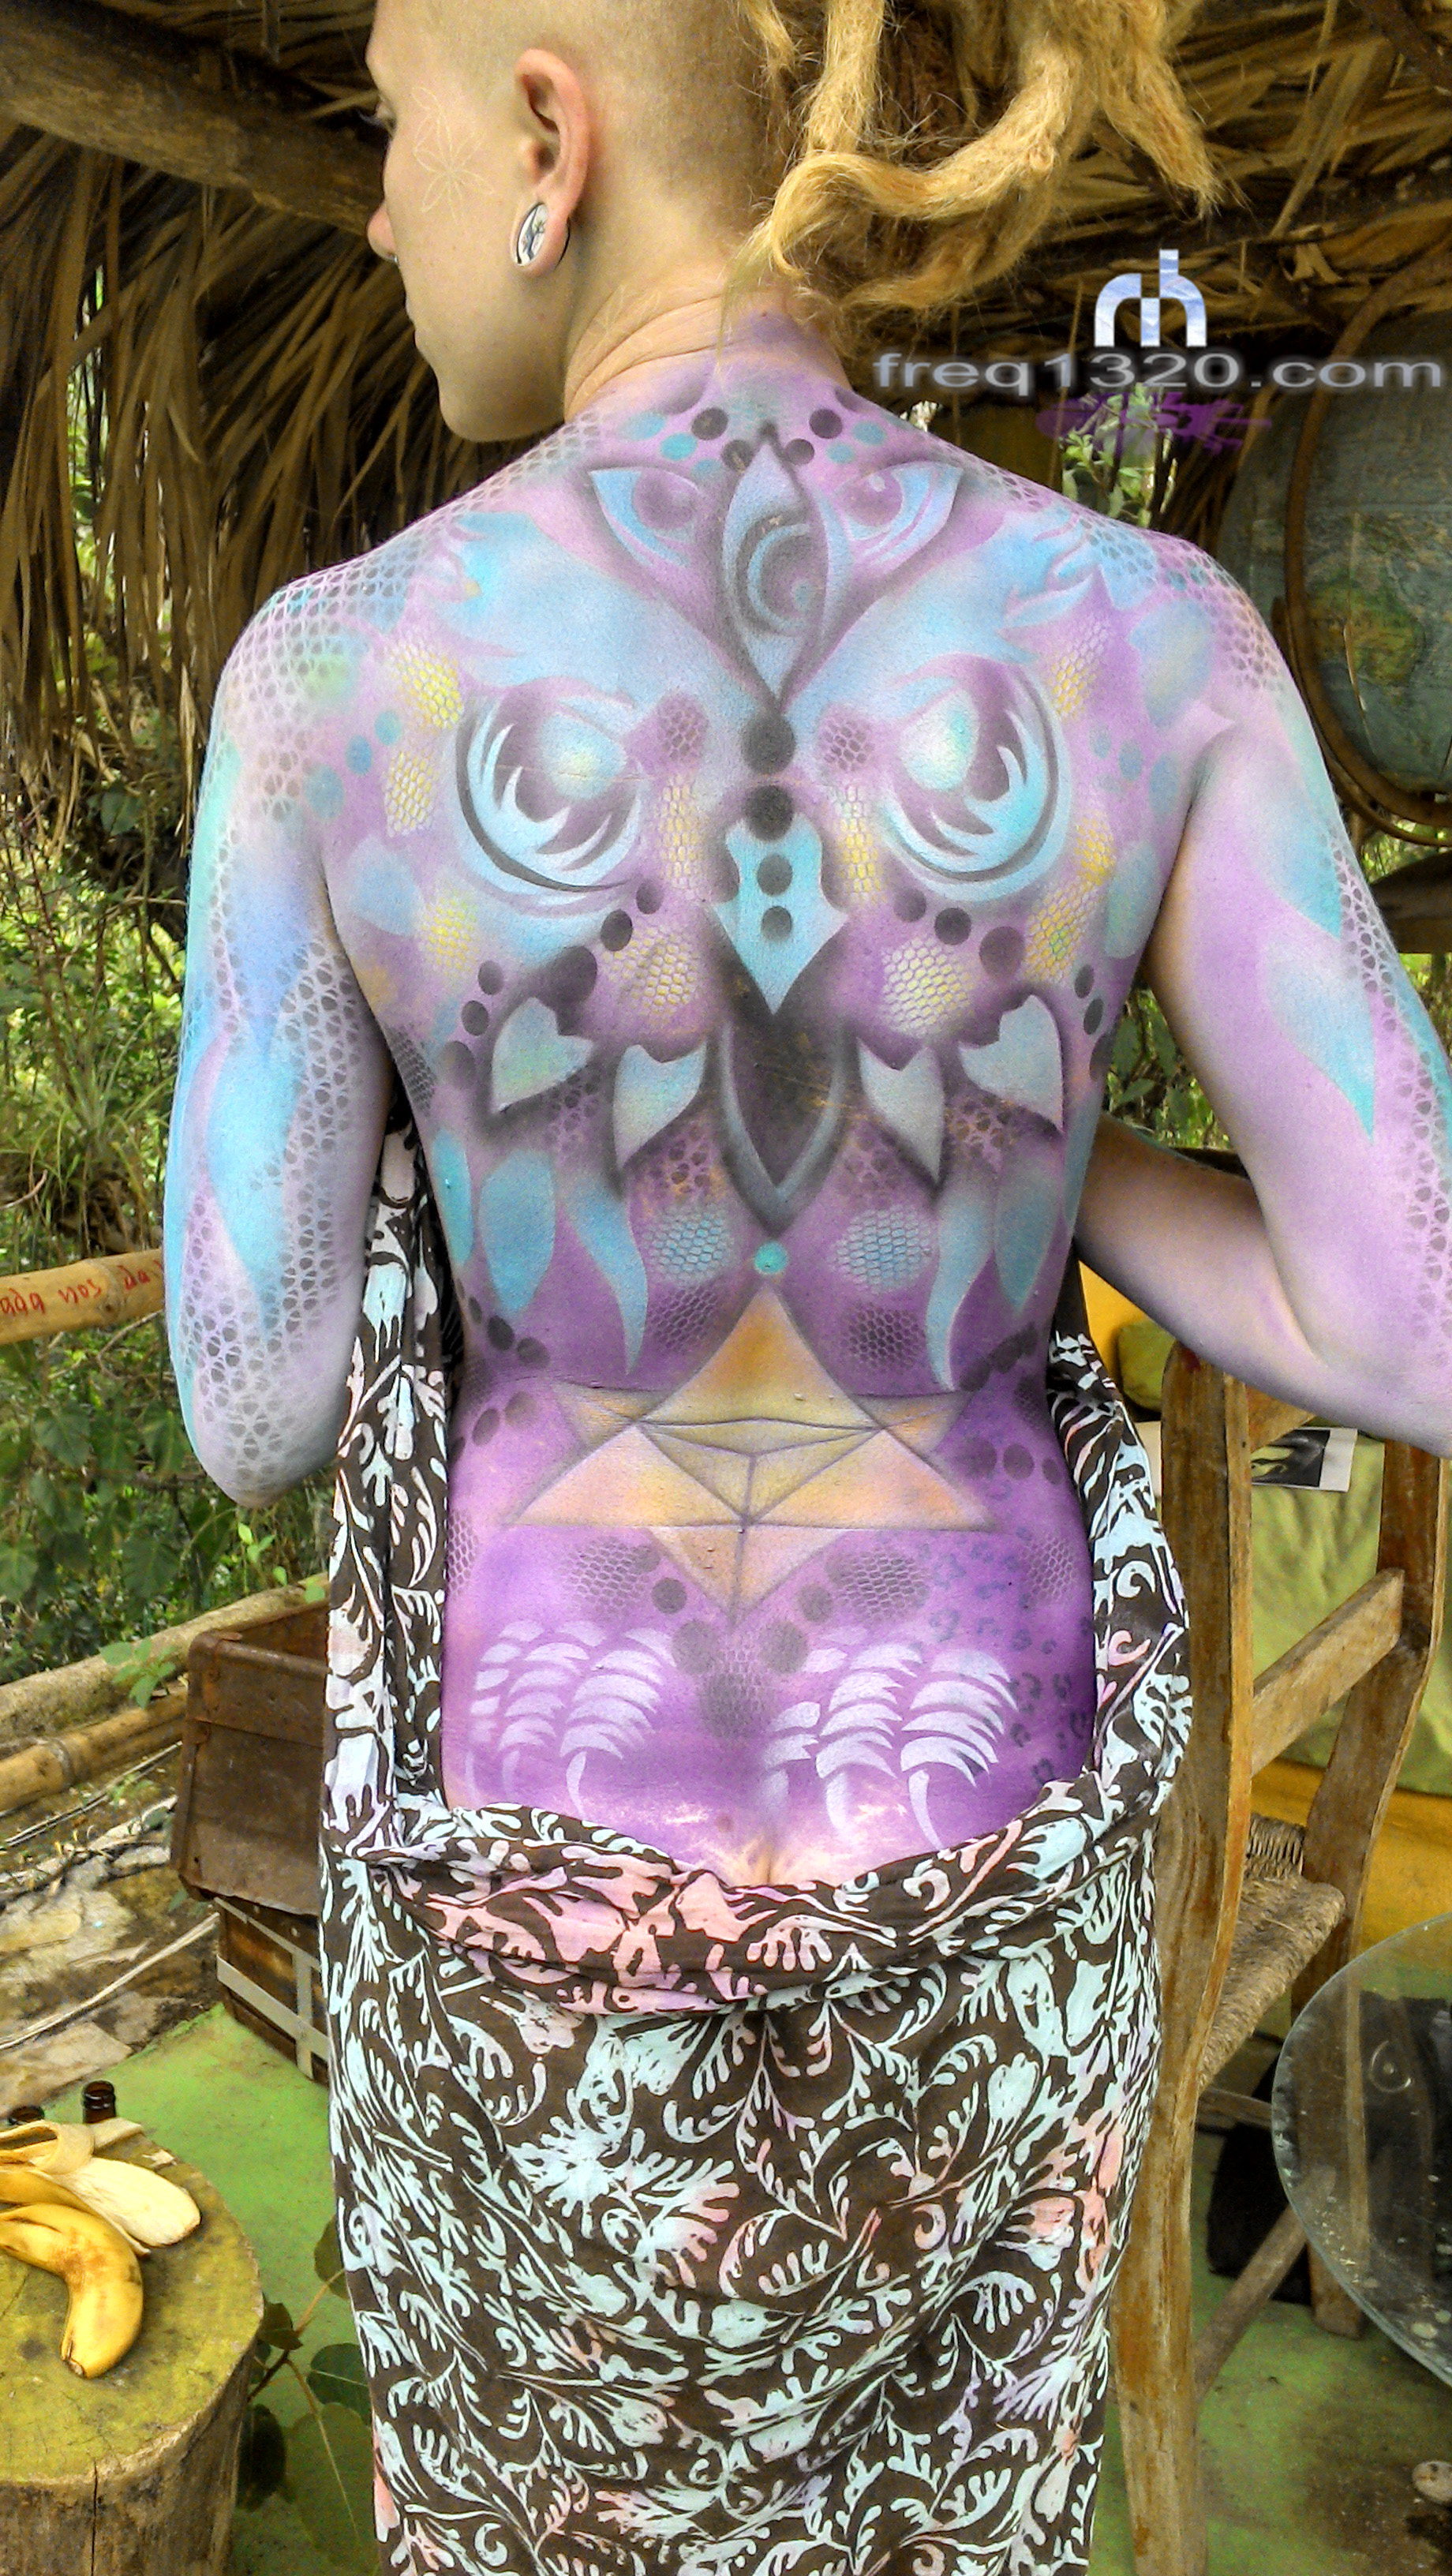 freq1320 / body art / Xilitla